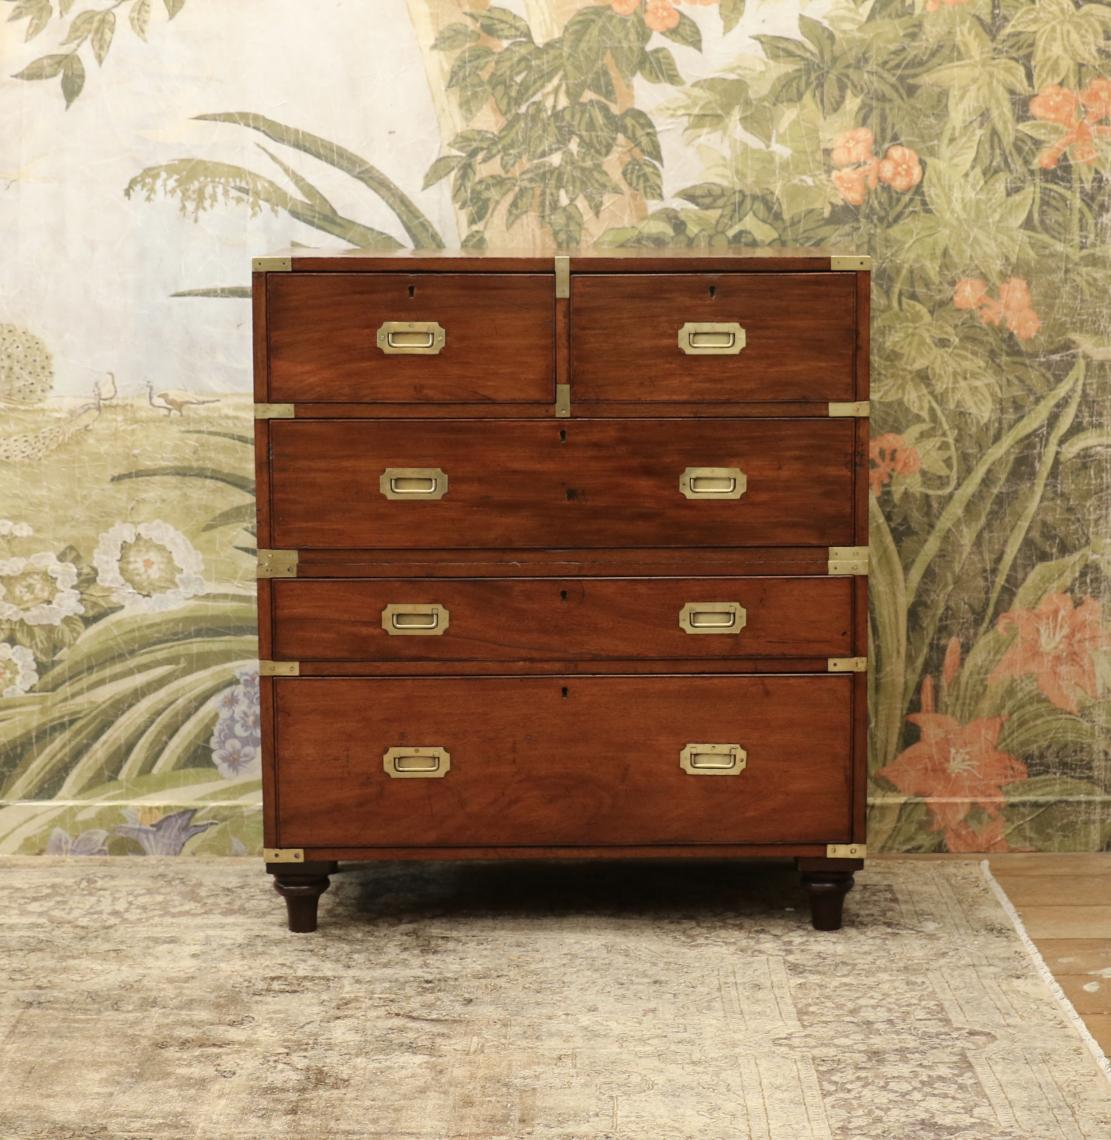 110-87 - Military Chest